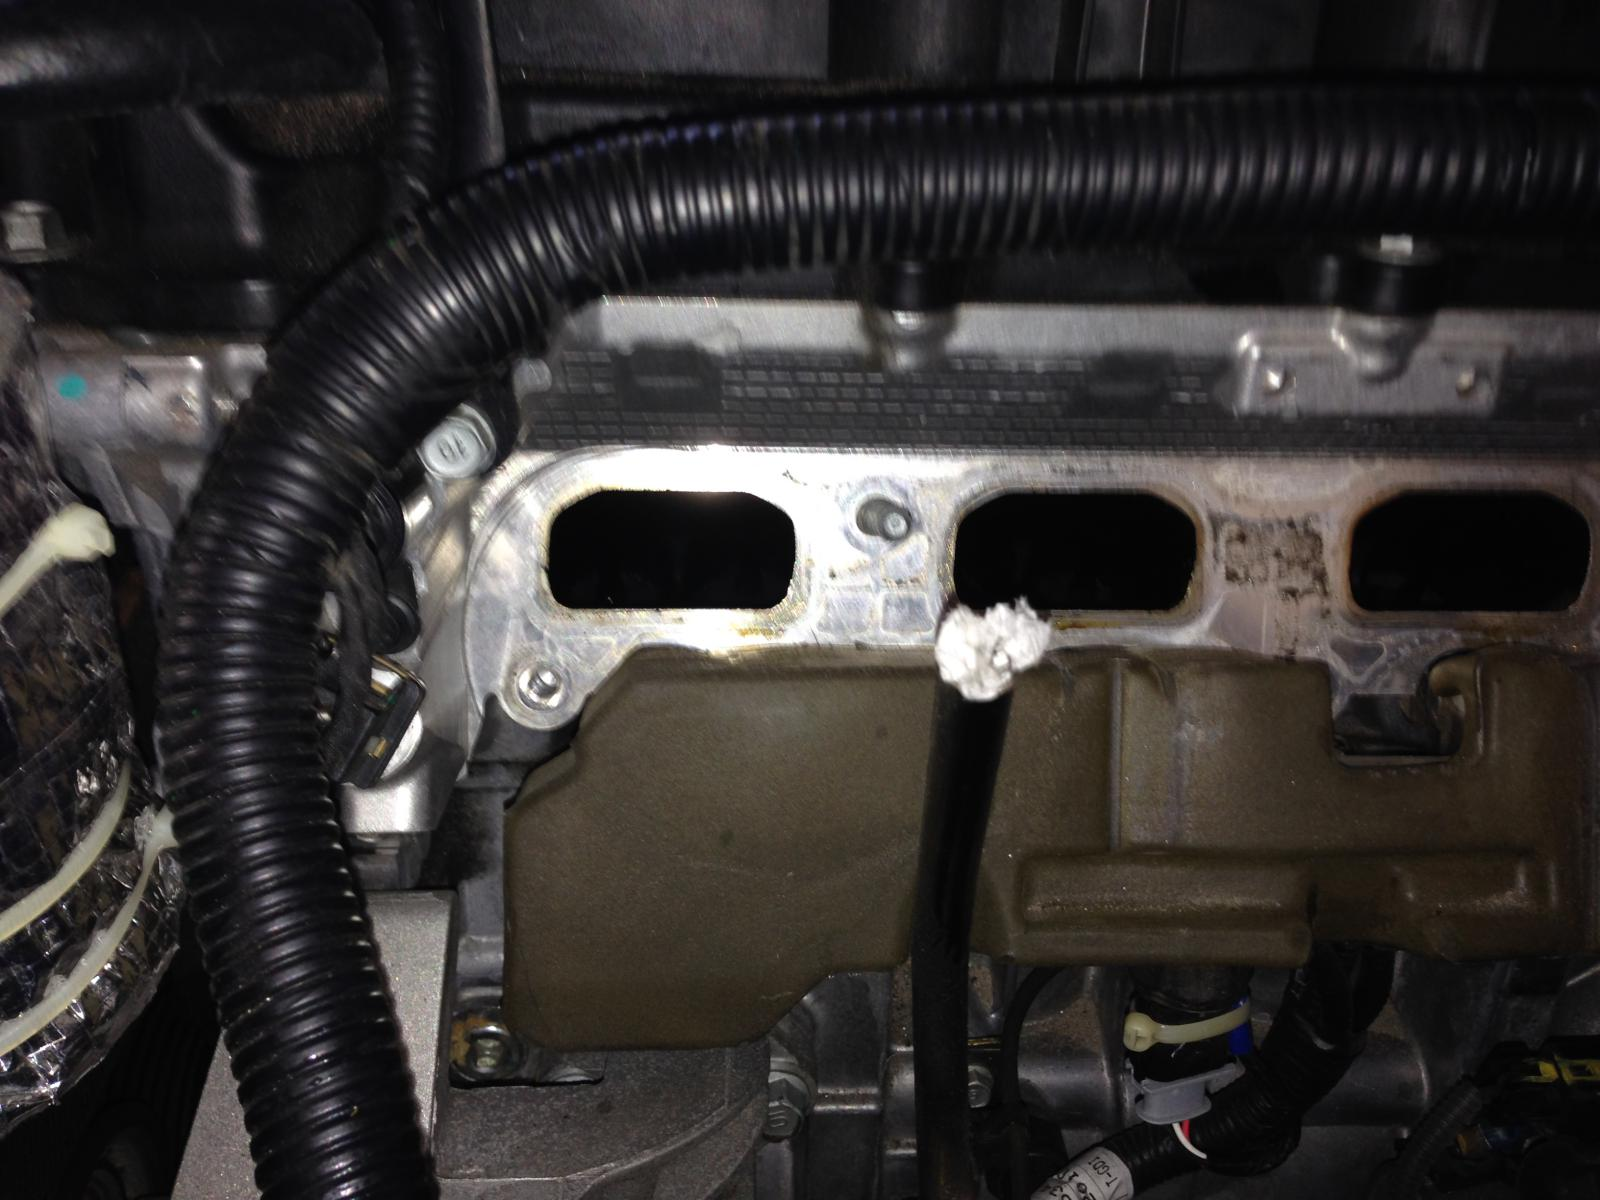 DIY] : - Intake Manifold Removal (for cleanup of carbon buildup